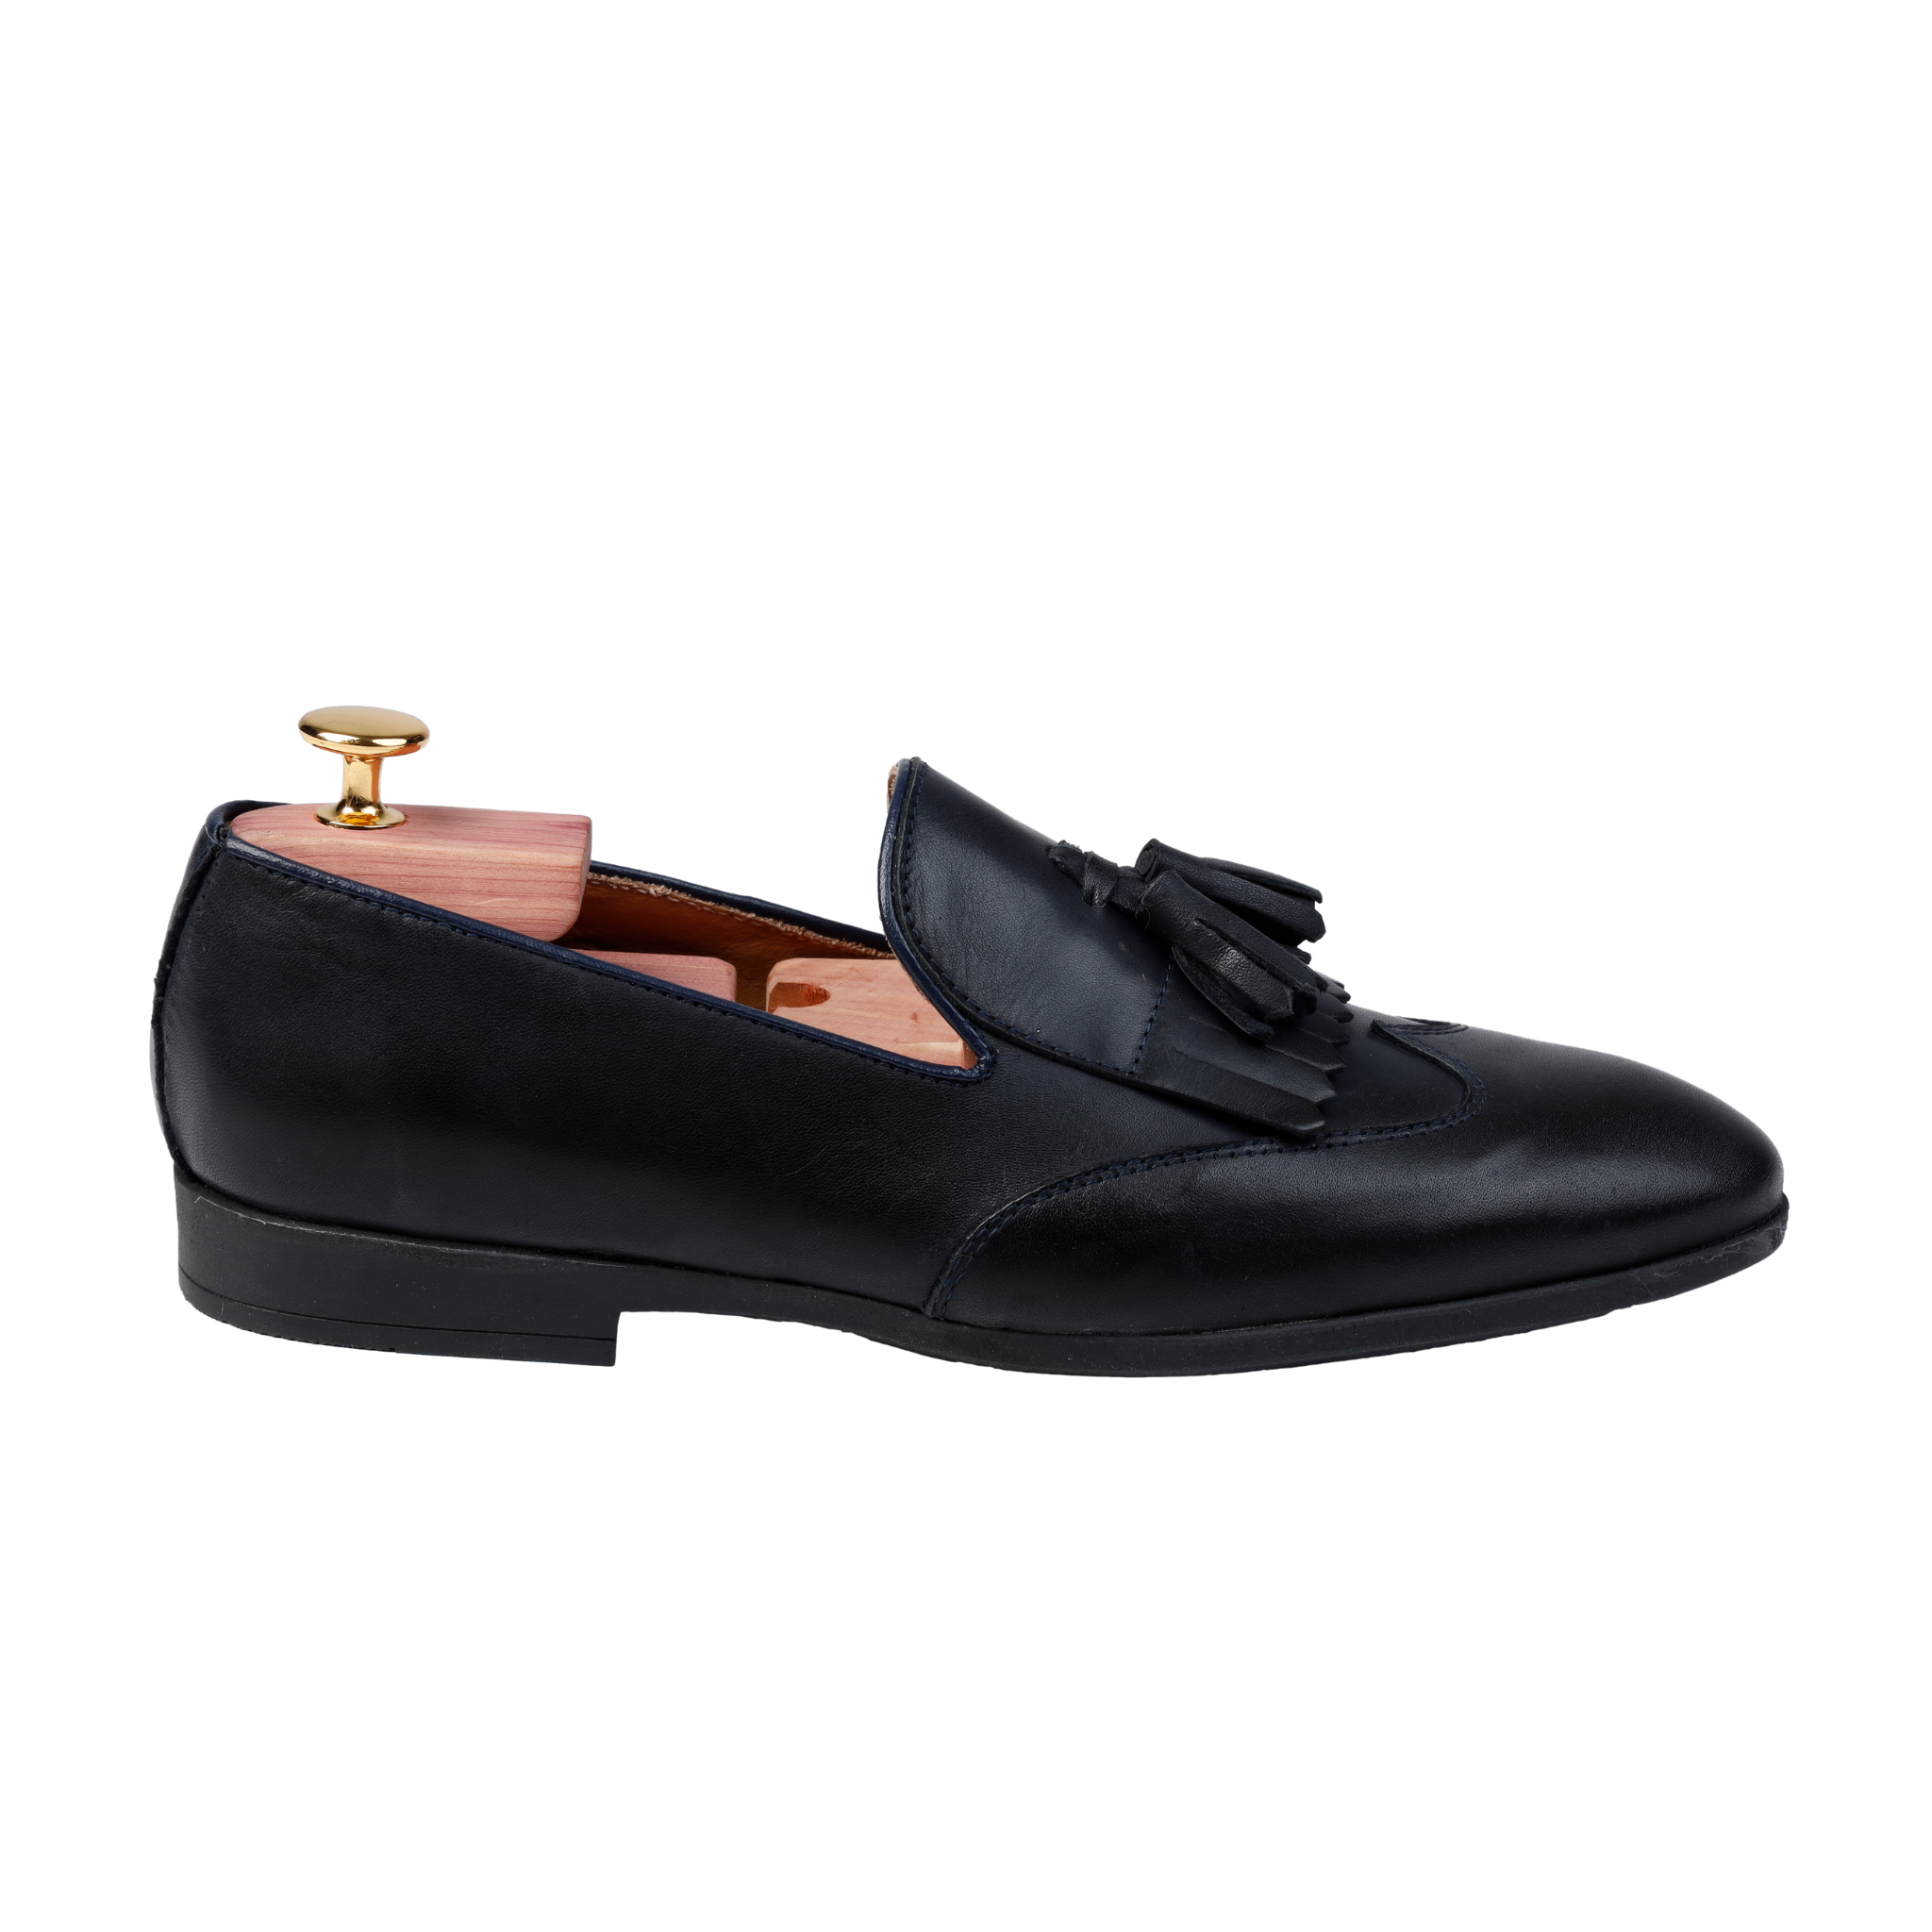 Mocassino uomo in pelle blu loafer con nappine e frange